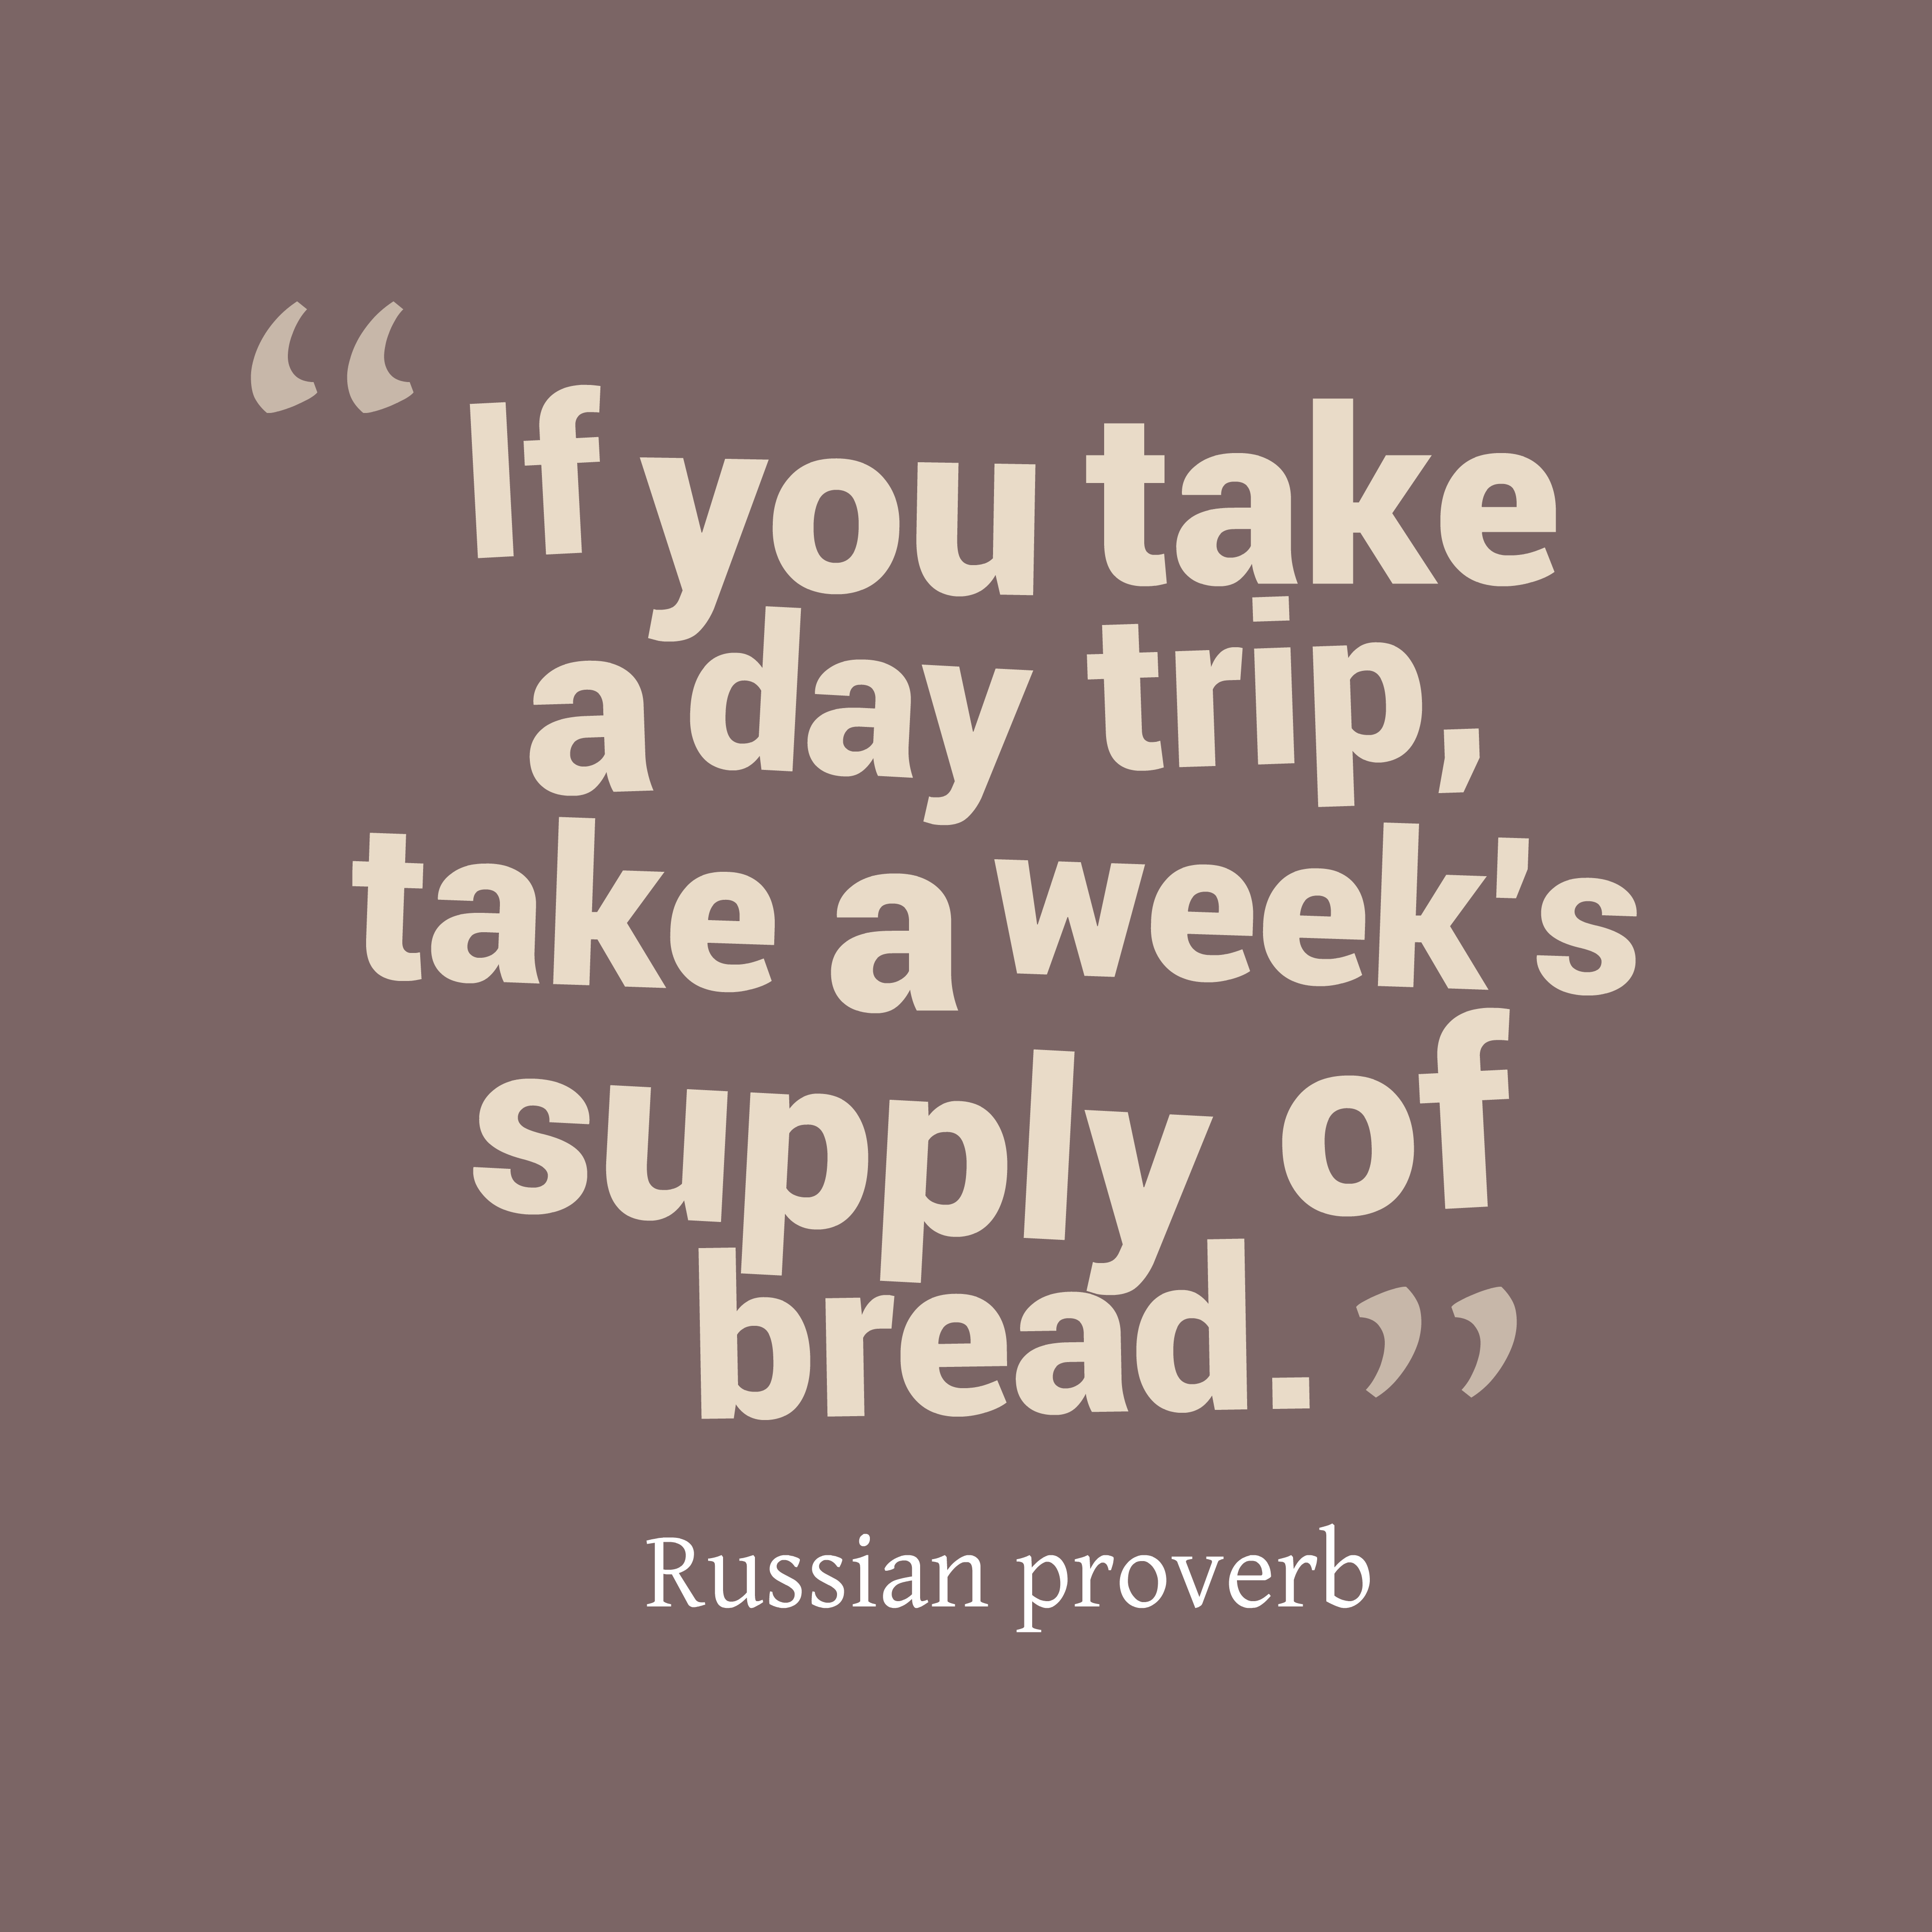 Quotes image of If you take a day trip, take a week's supply of bread.